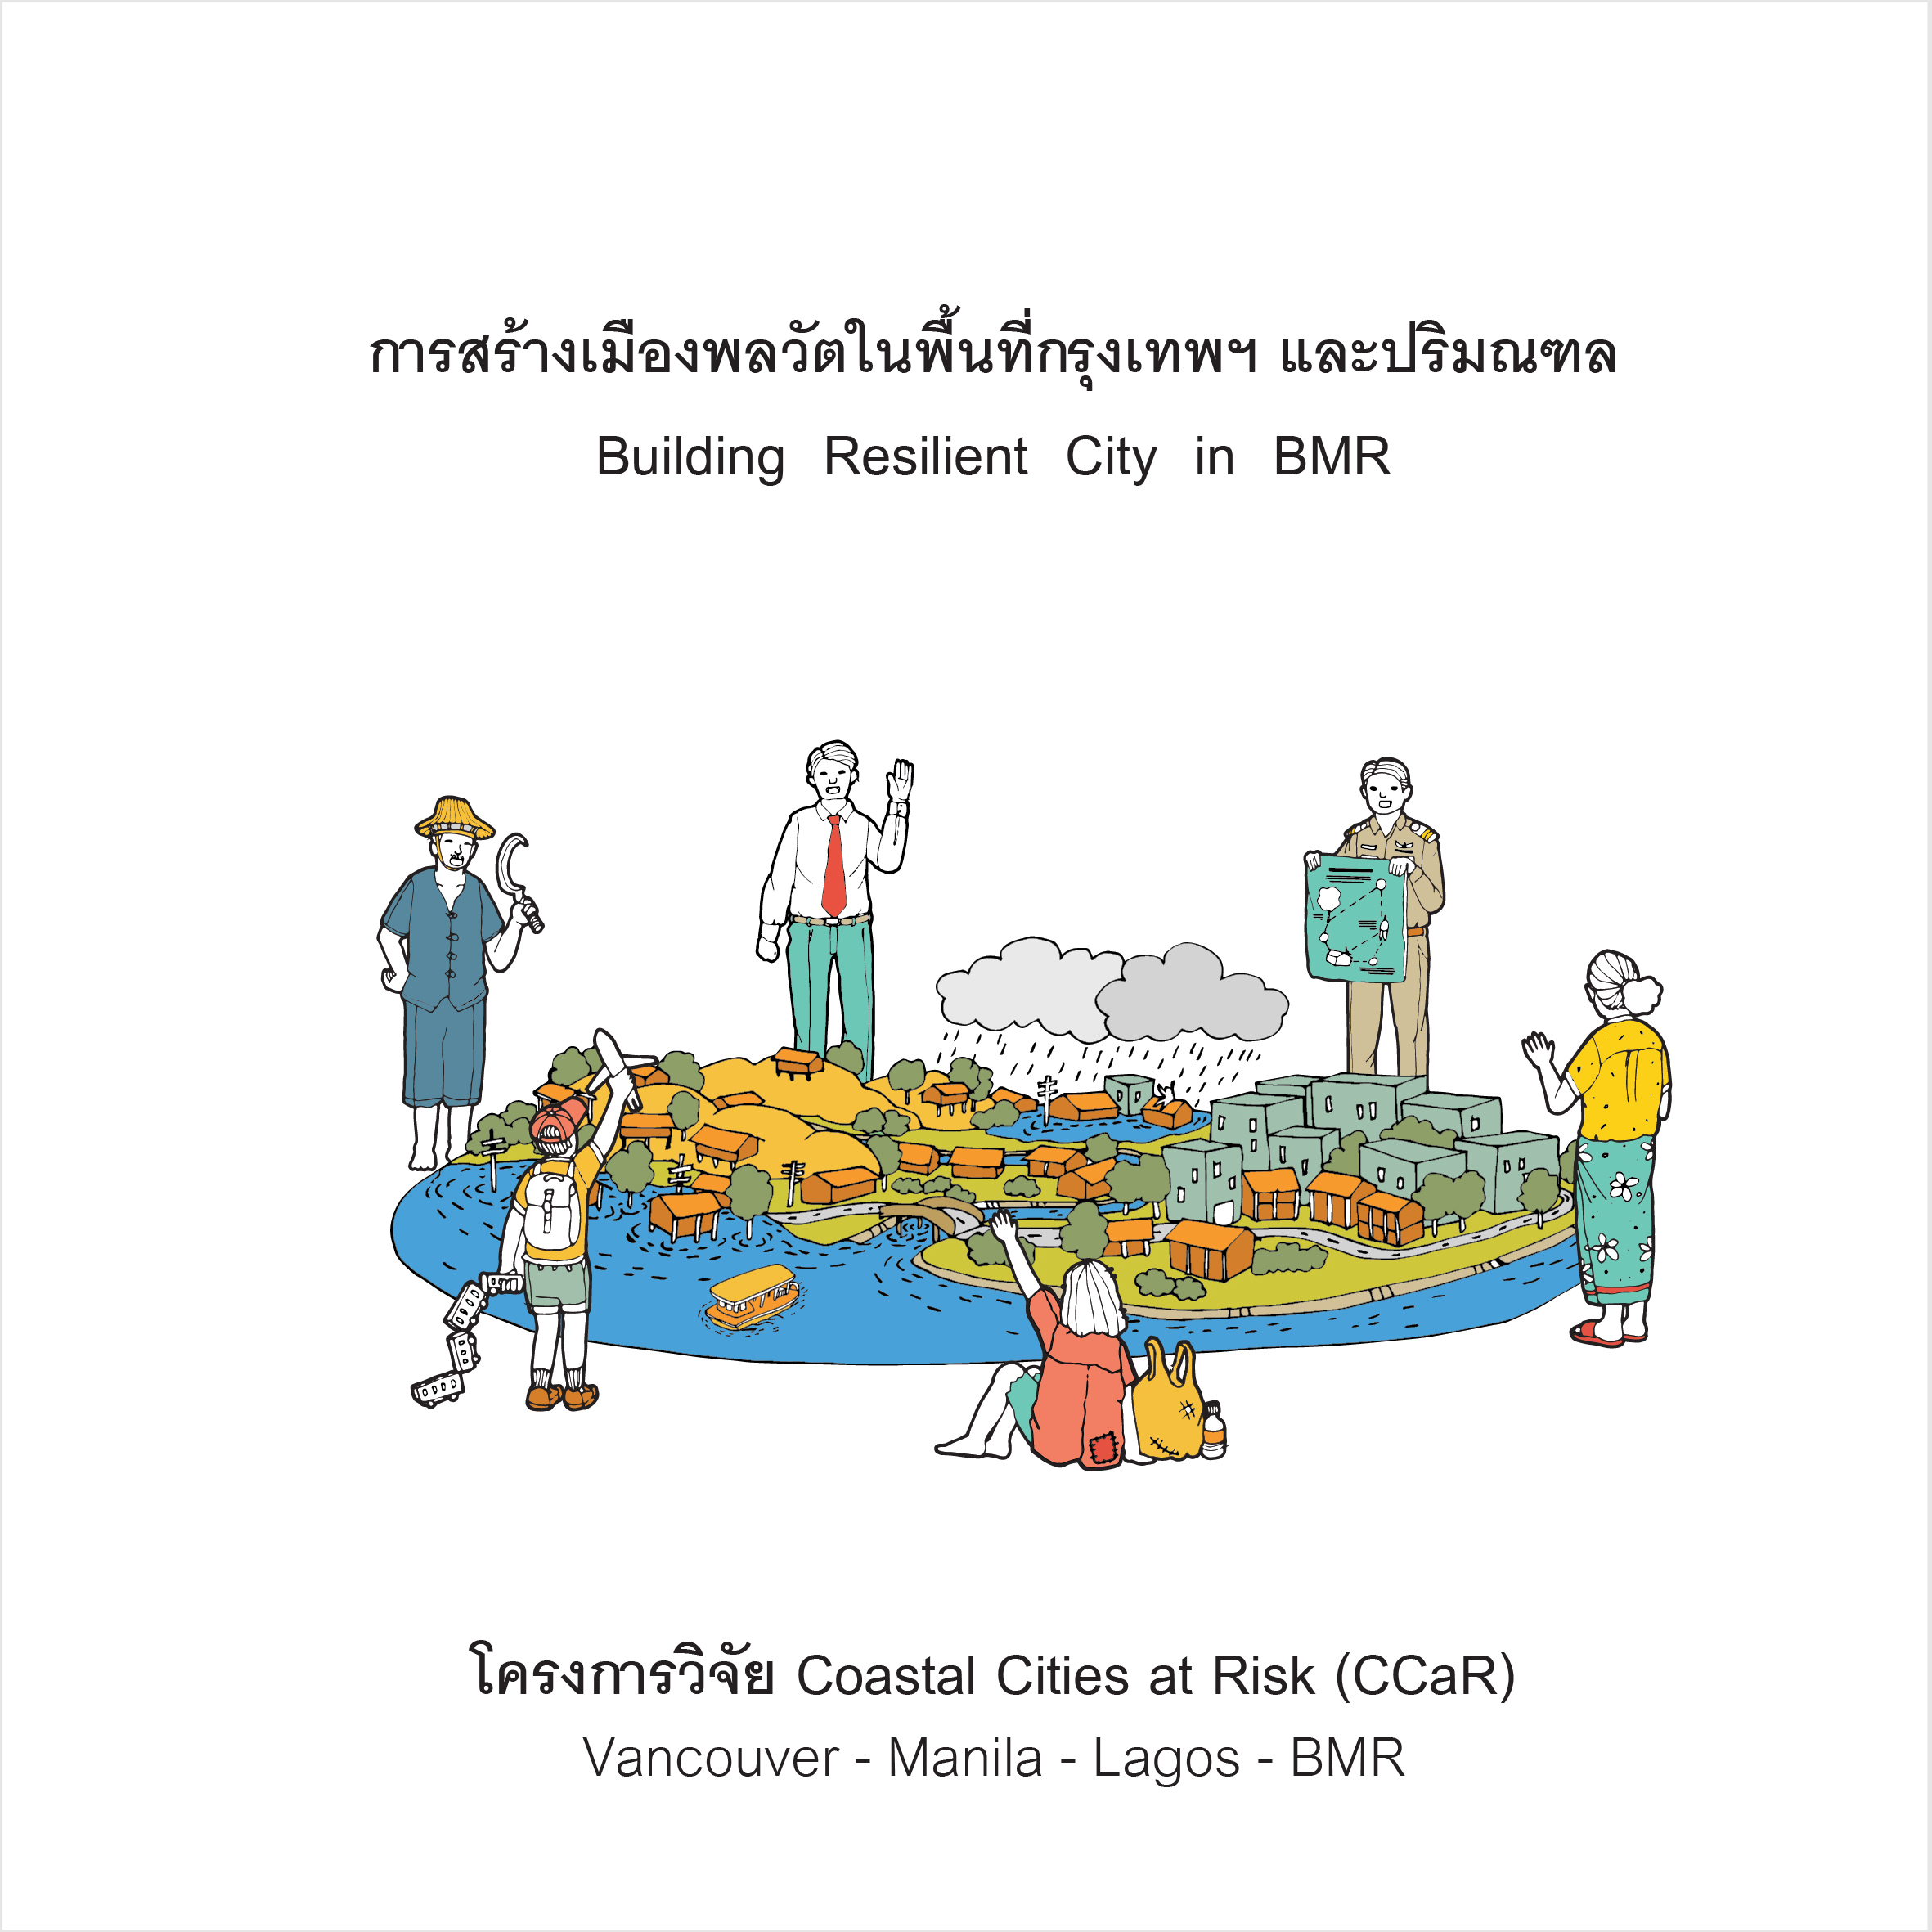 Openspace and Thammasat University: Building Resilient City in the Bangkok Metropolitan Region